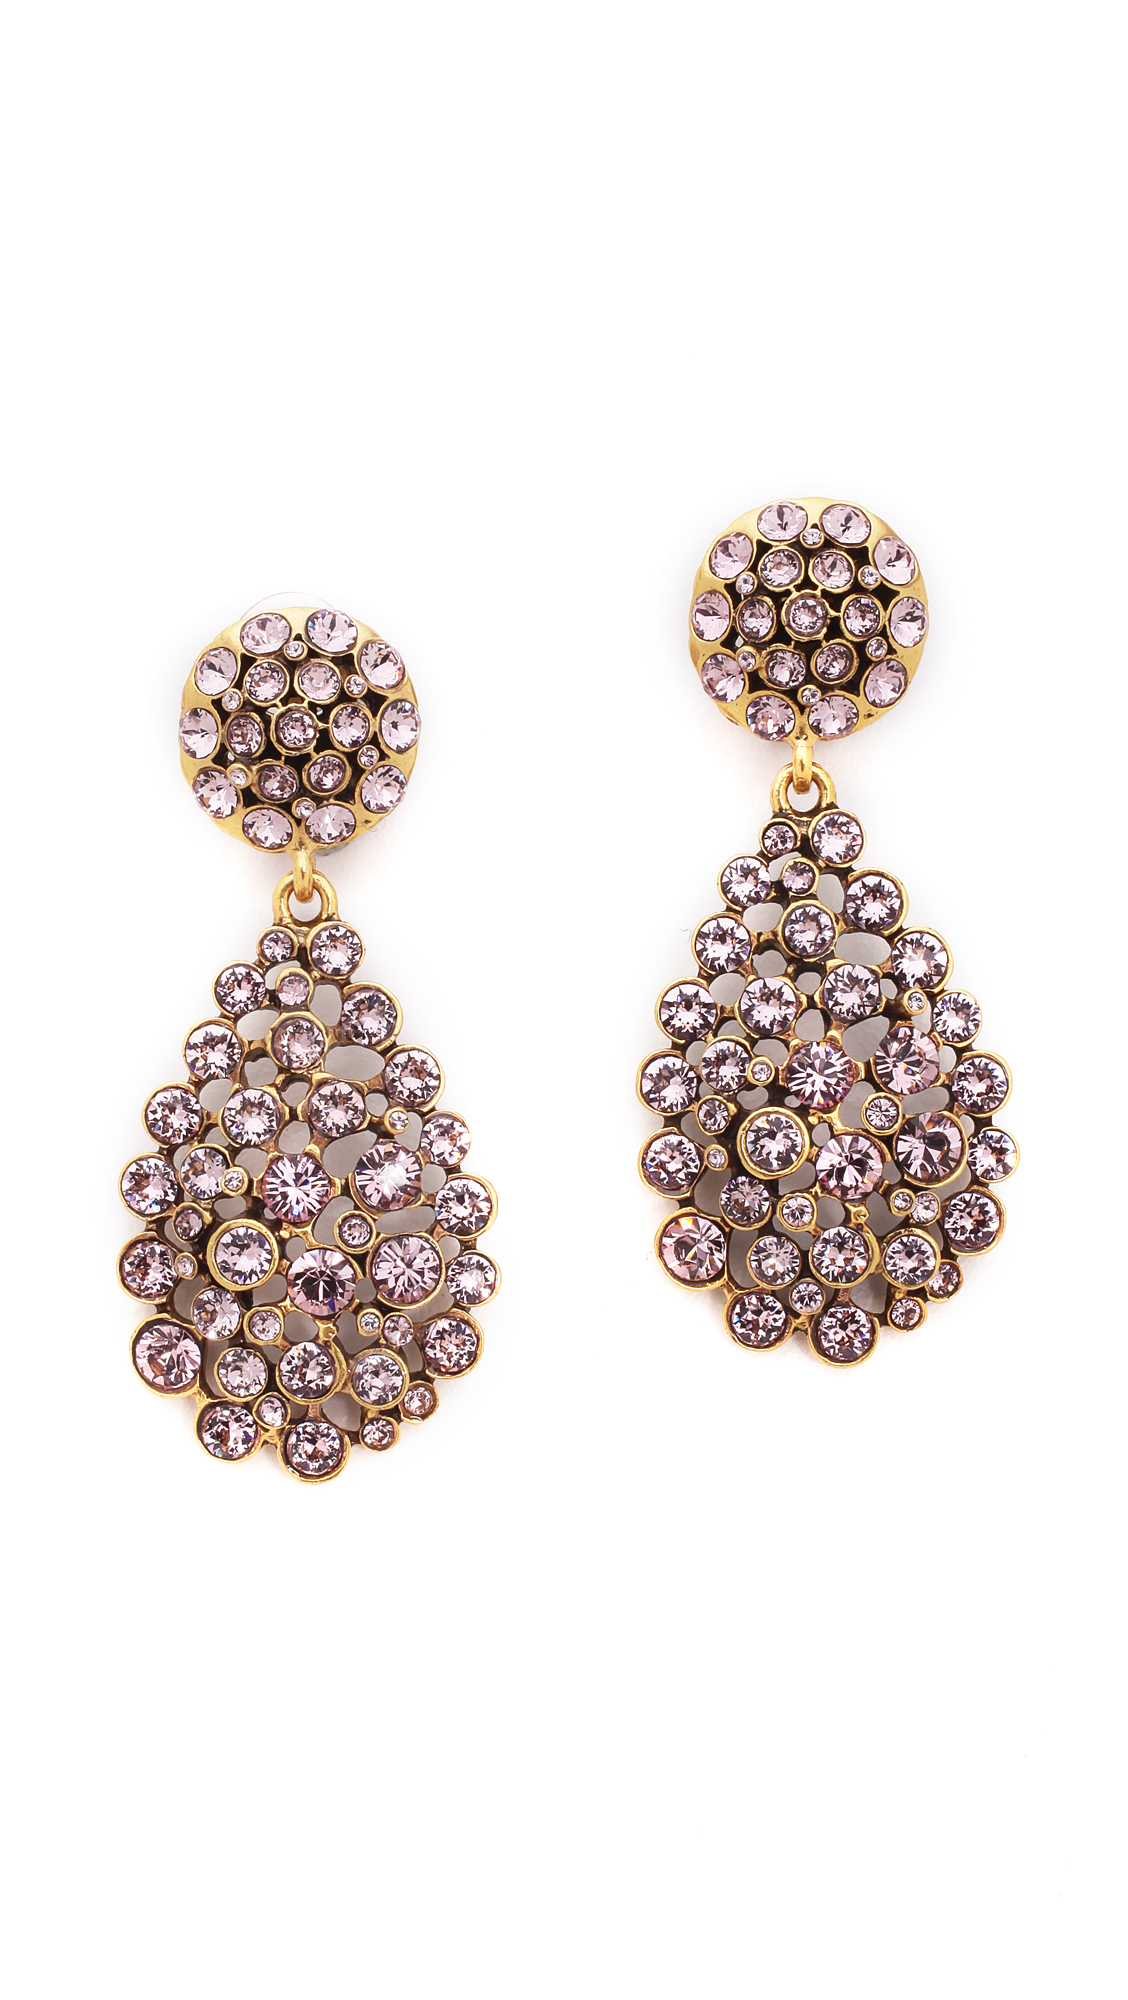 Oscar De La Renta Teardrop Clip On Earrings Lilac In